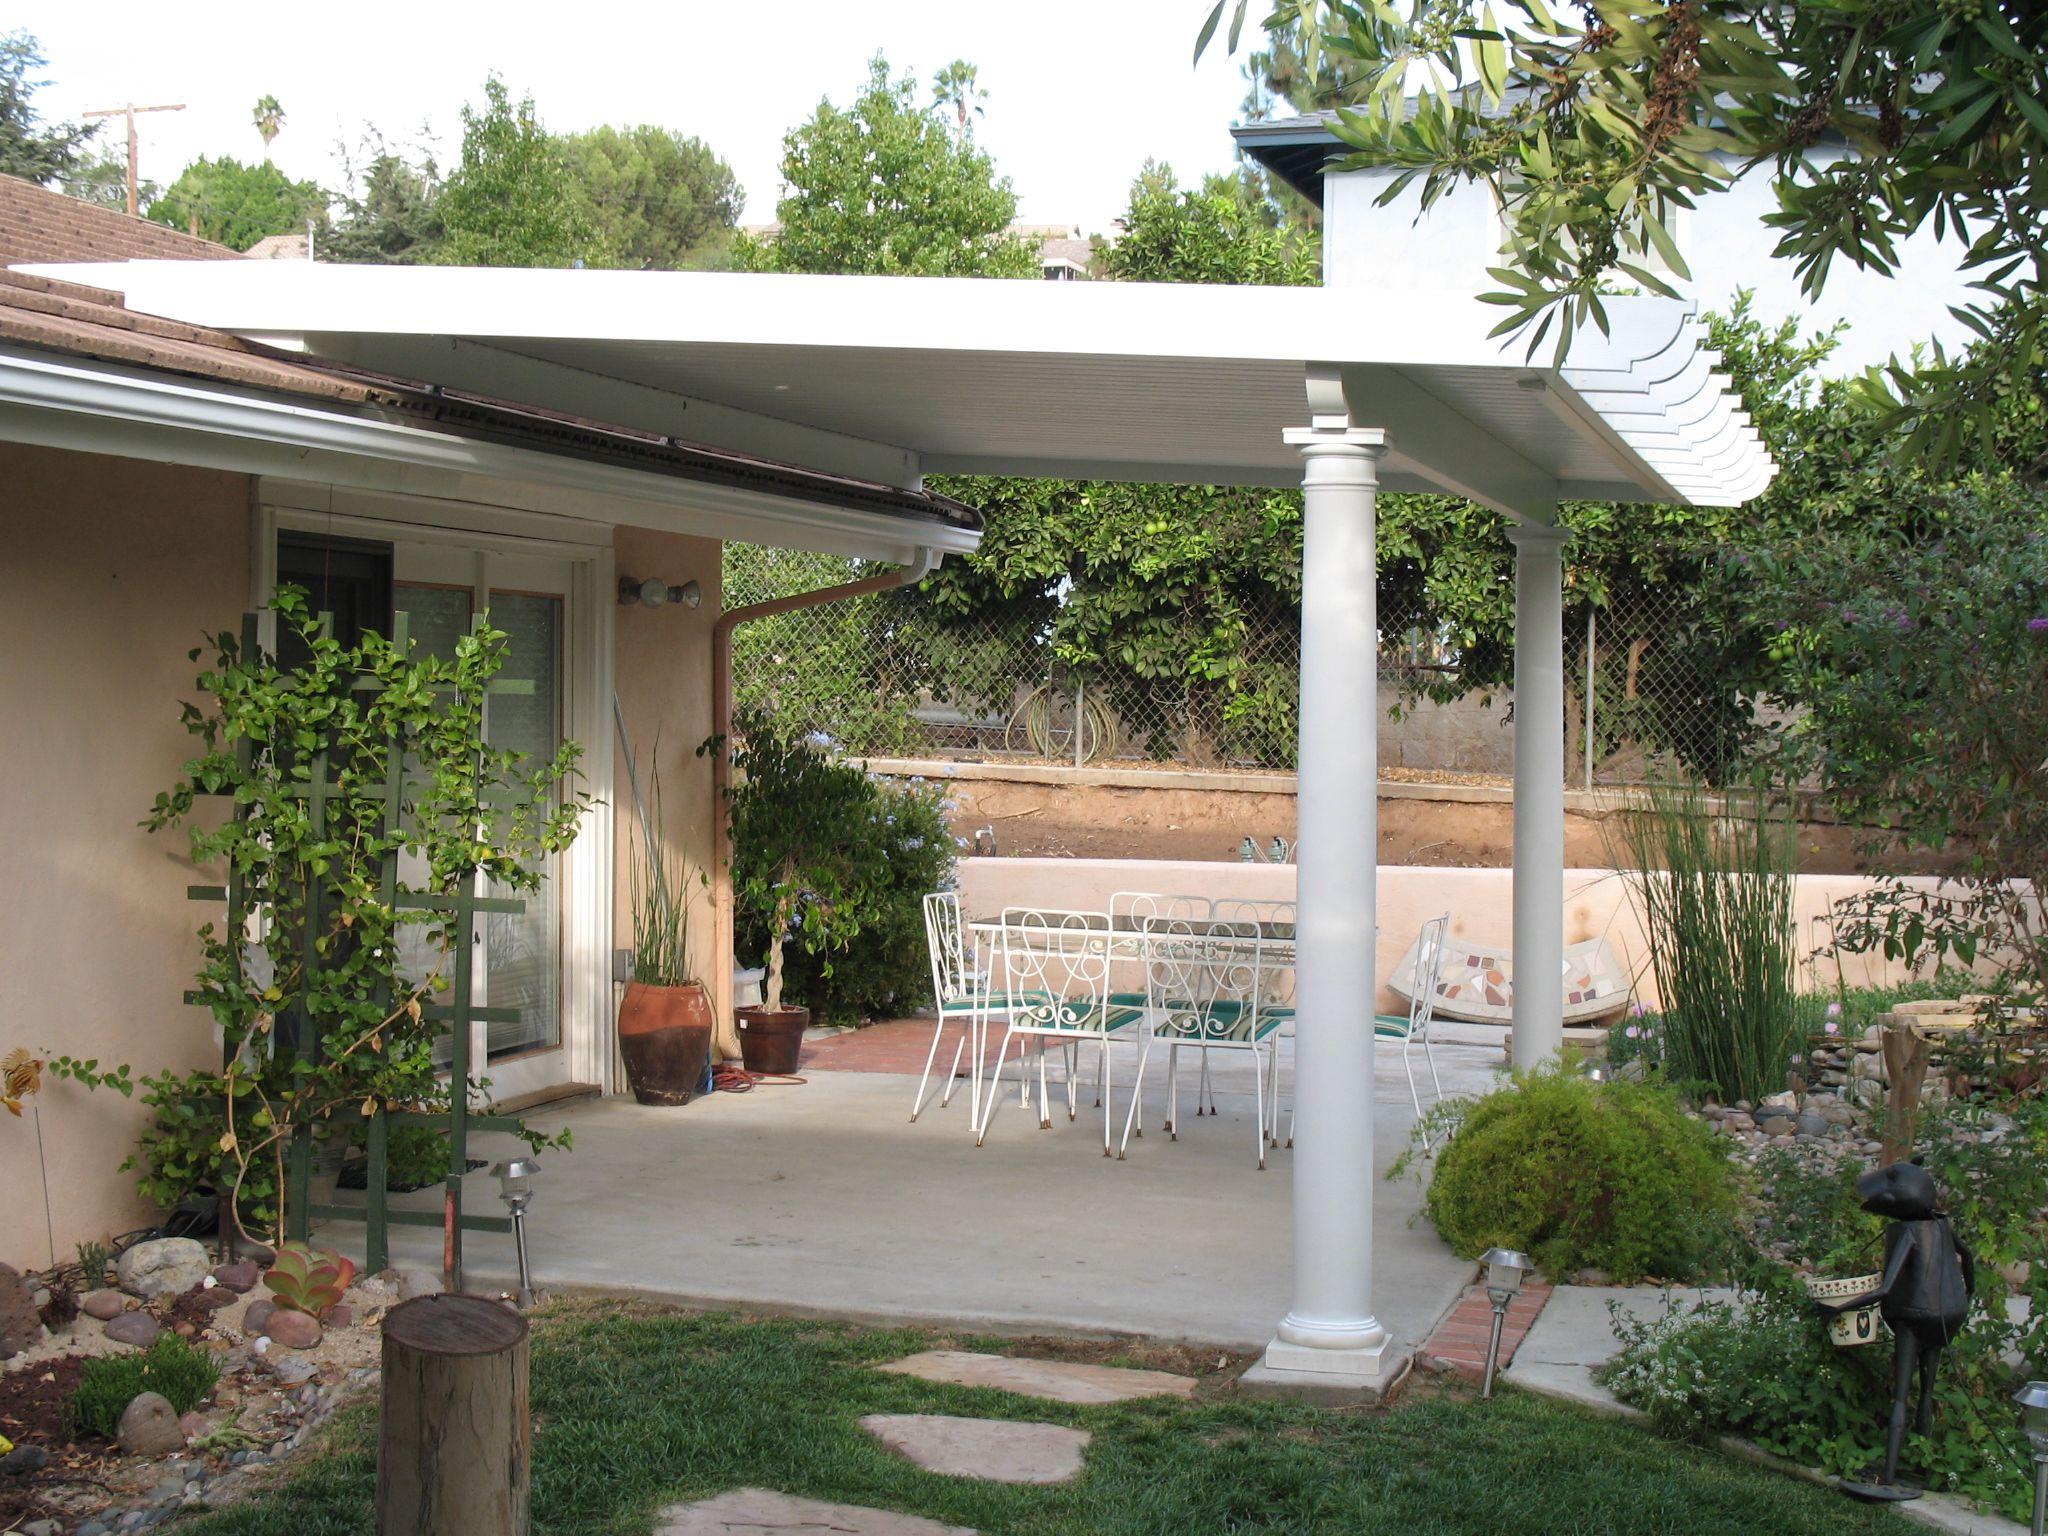 Marvelous White Round Column With White Wooden Sloping Roofing And White Patio Set Decors As